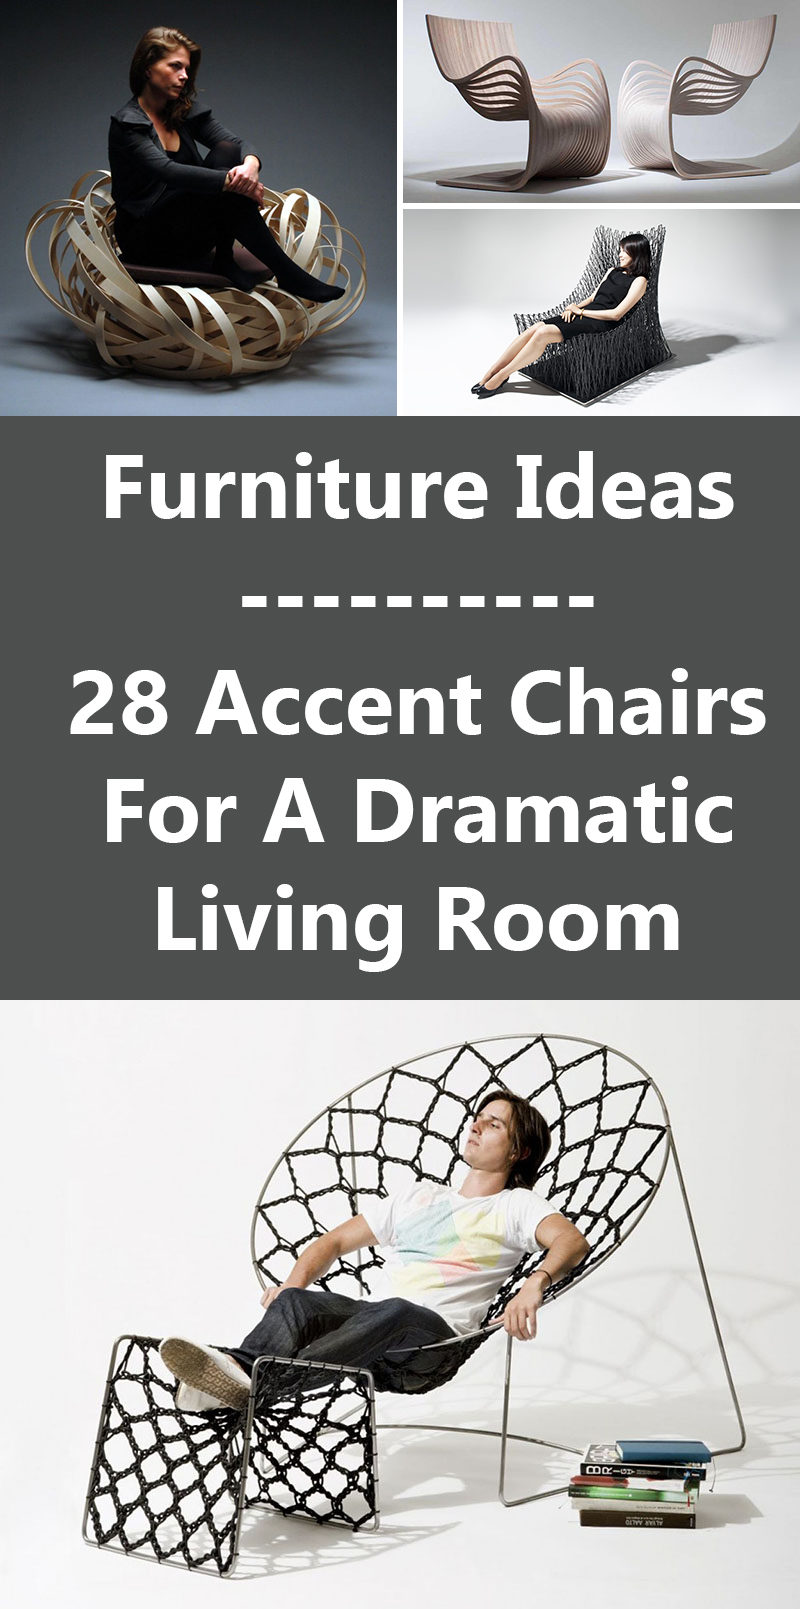 Furniture Ideas - 28 Accent Chairs For A Dramatic Living Room